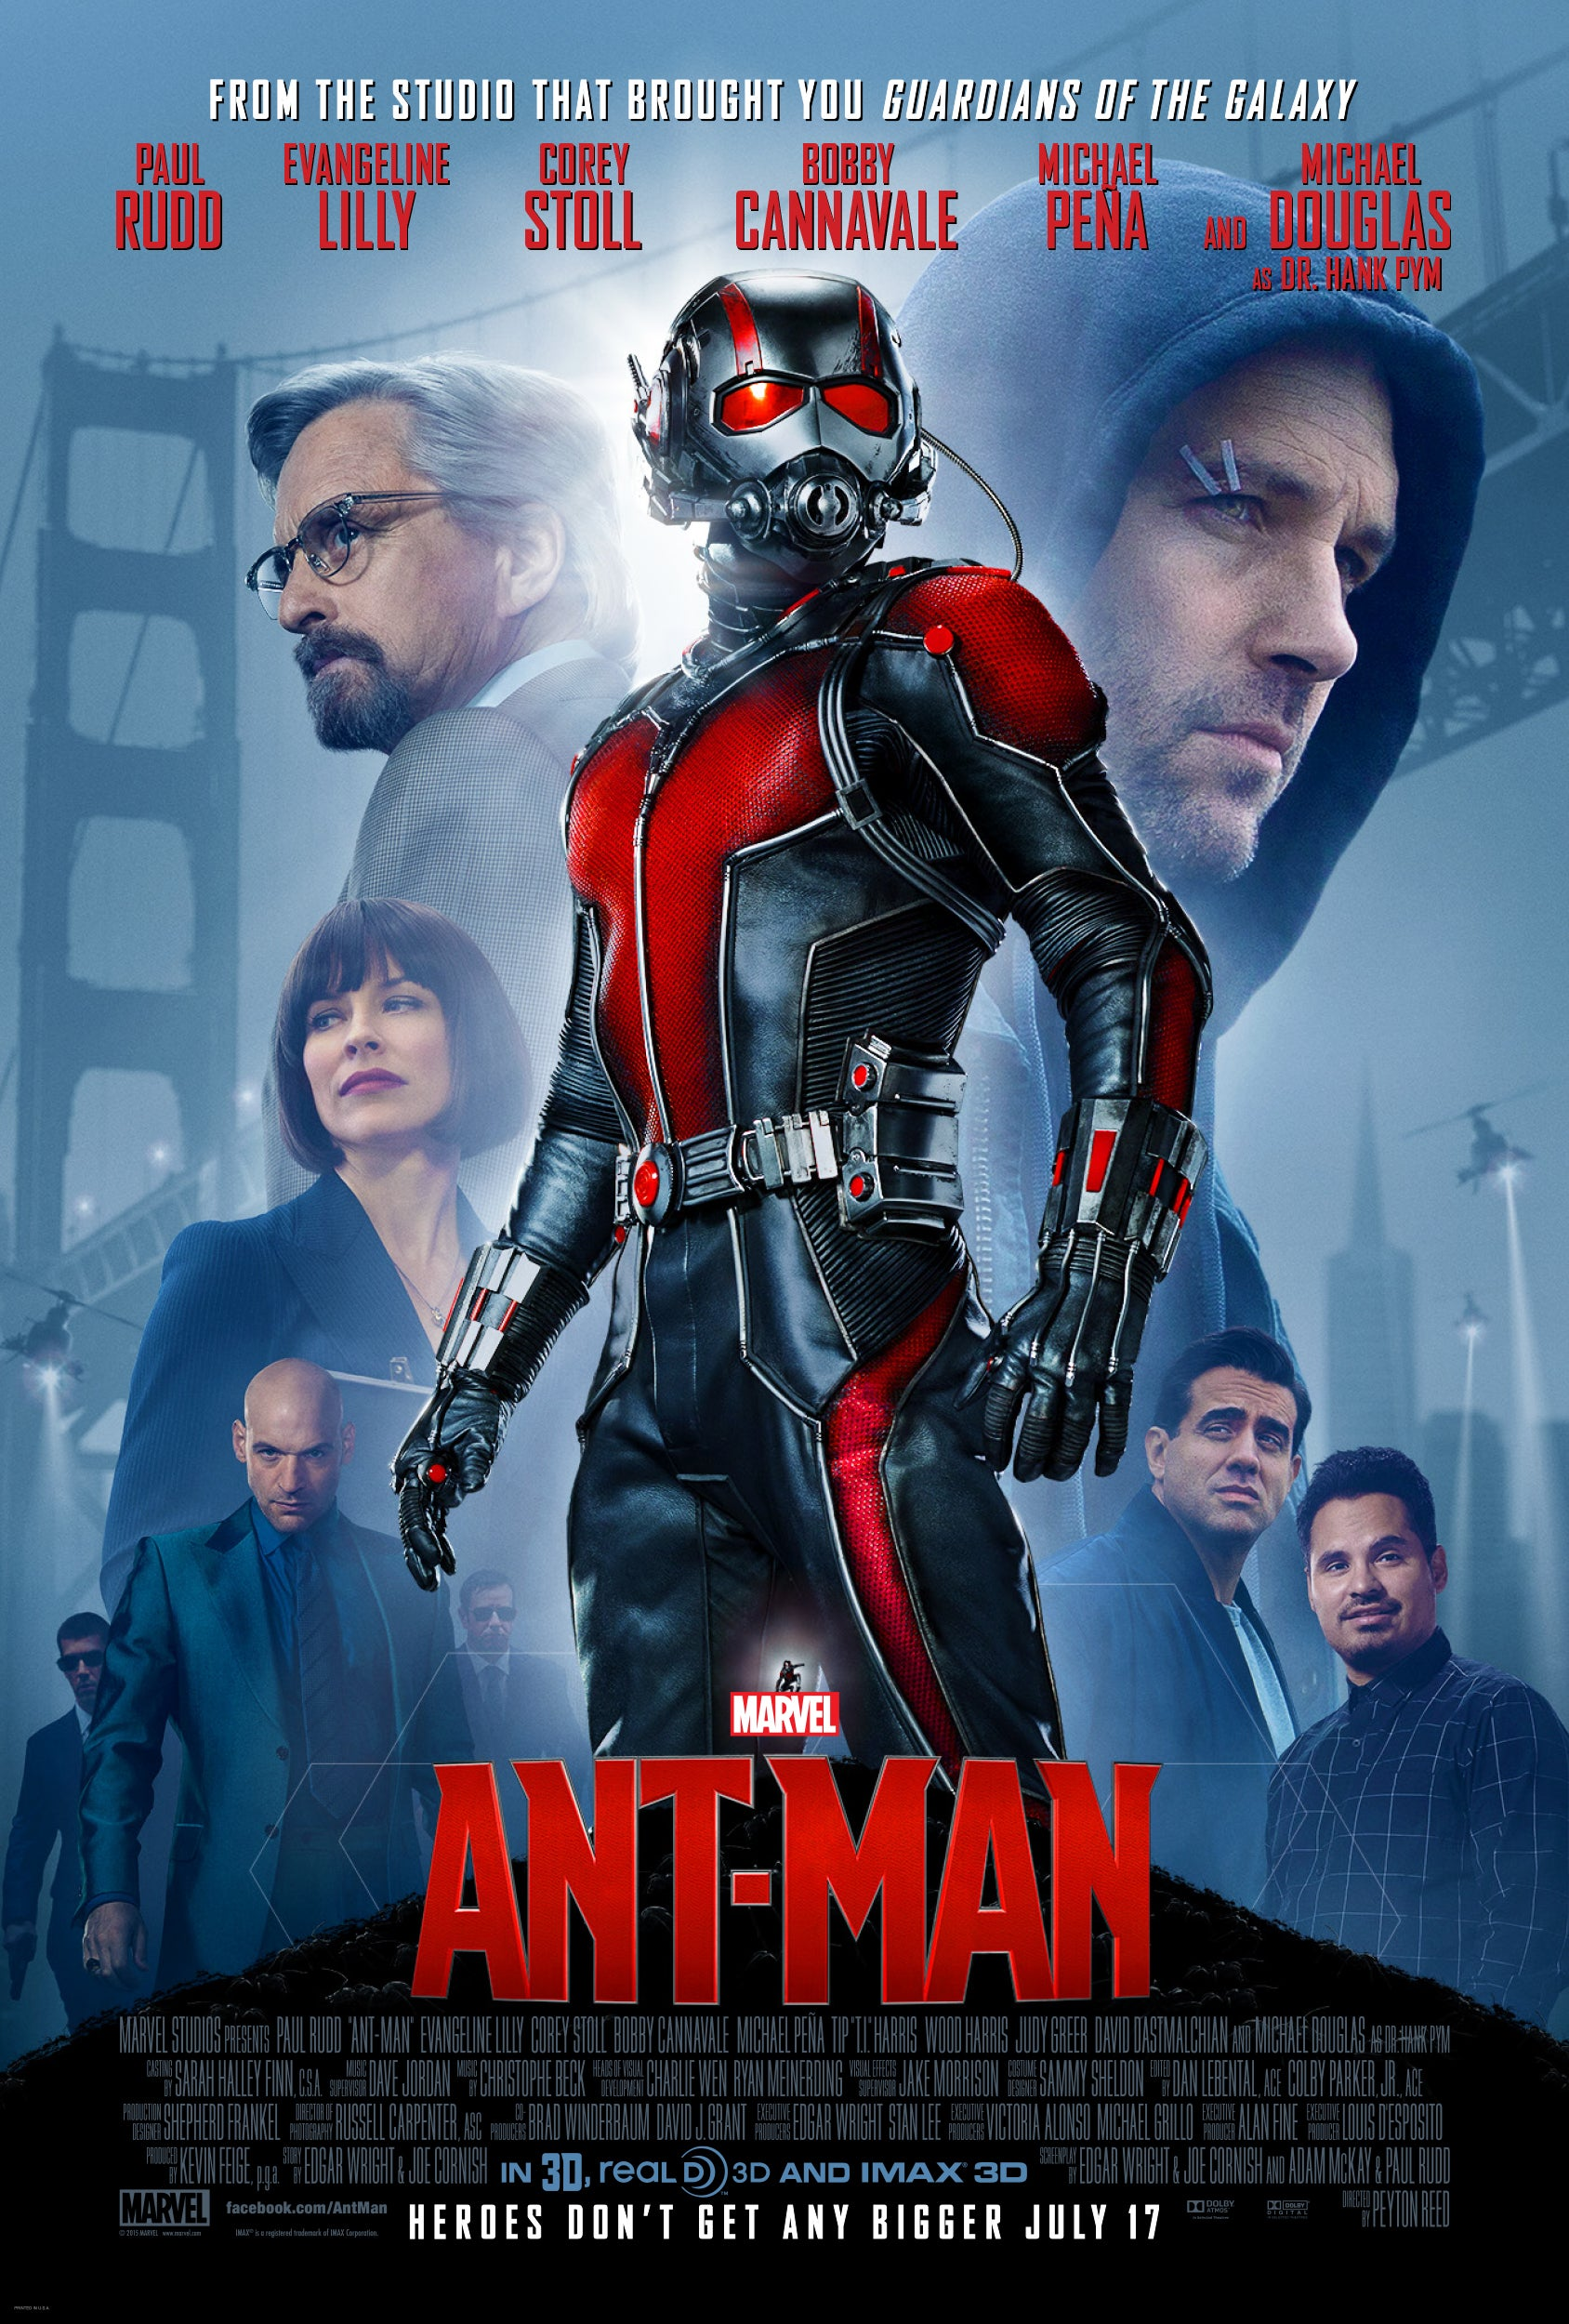 Ant-Man Movie Poster - Marvel Cinematic Universe